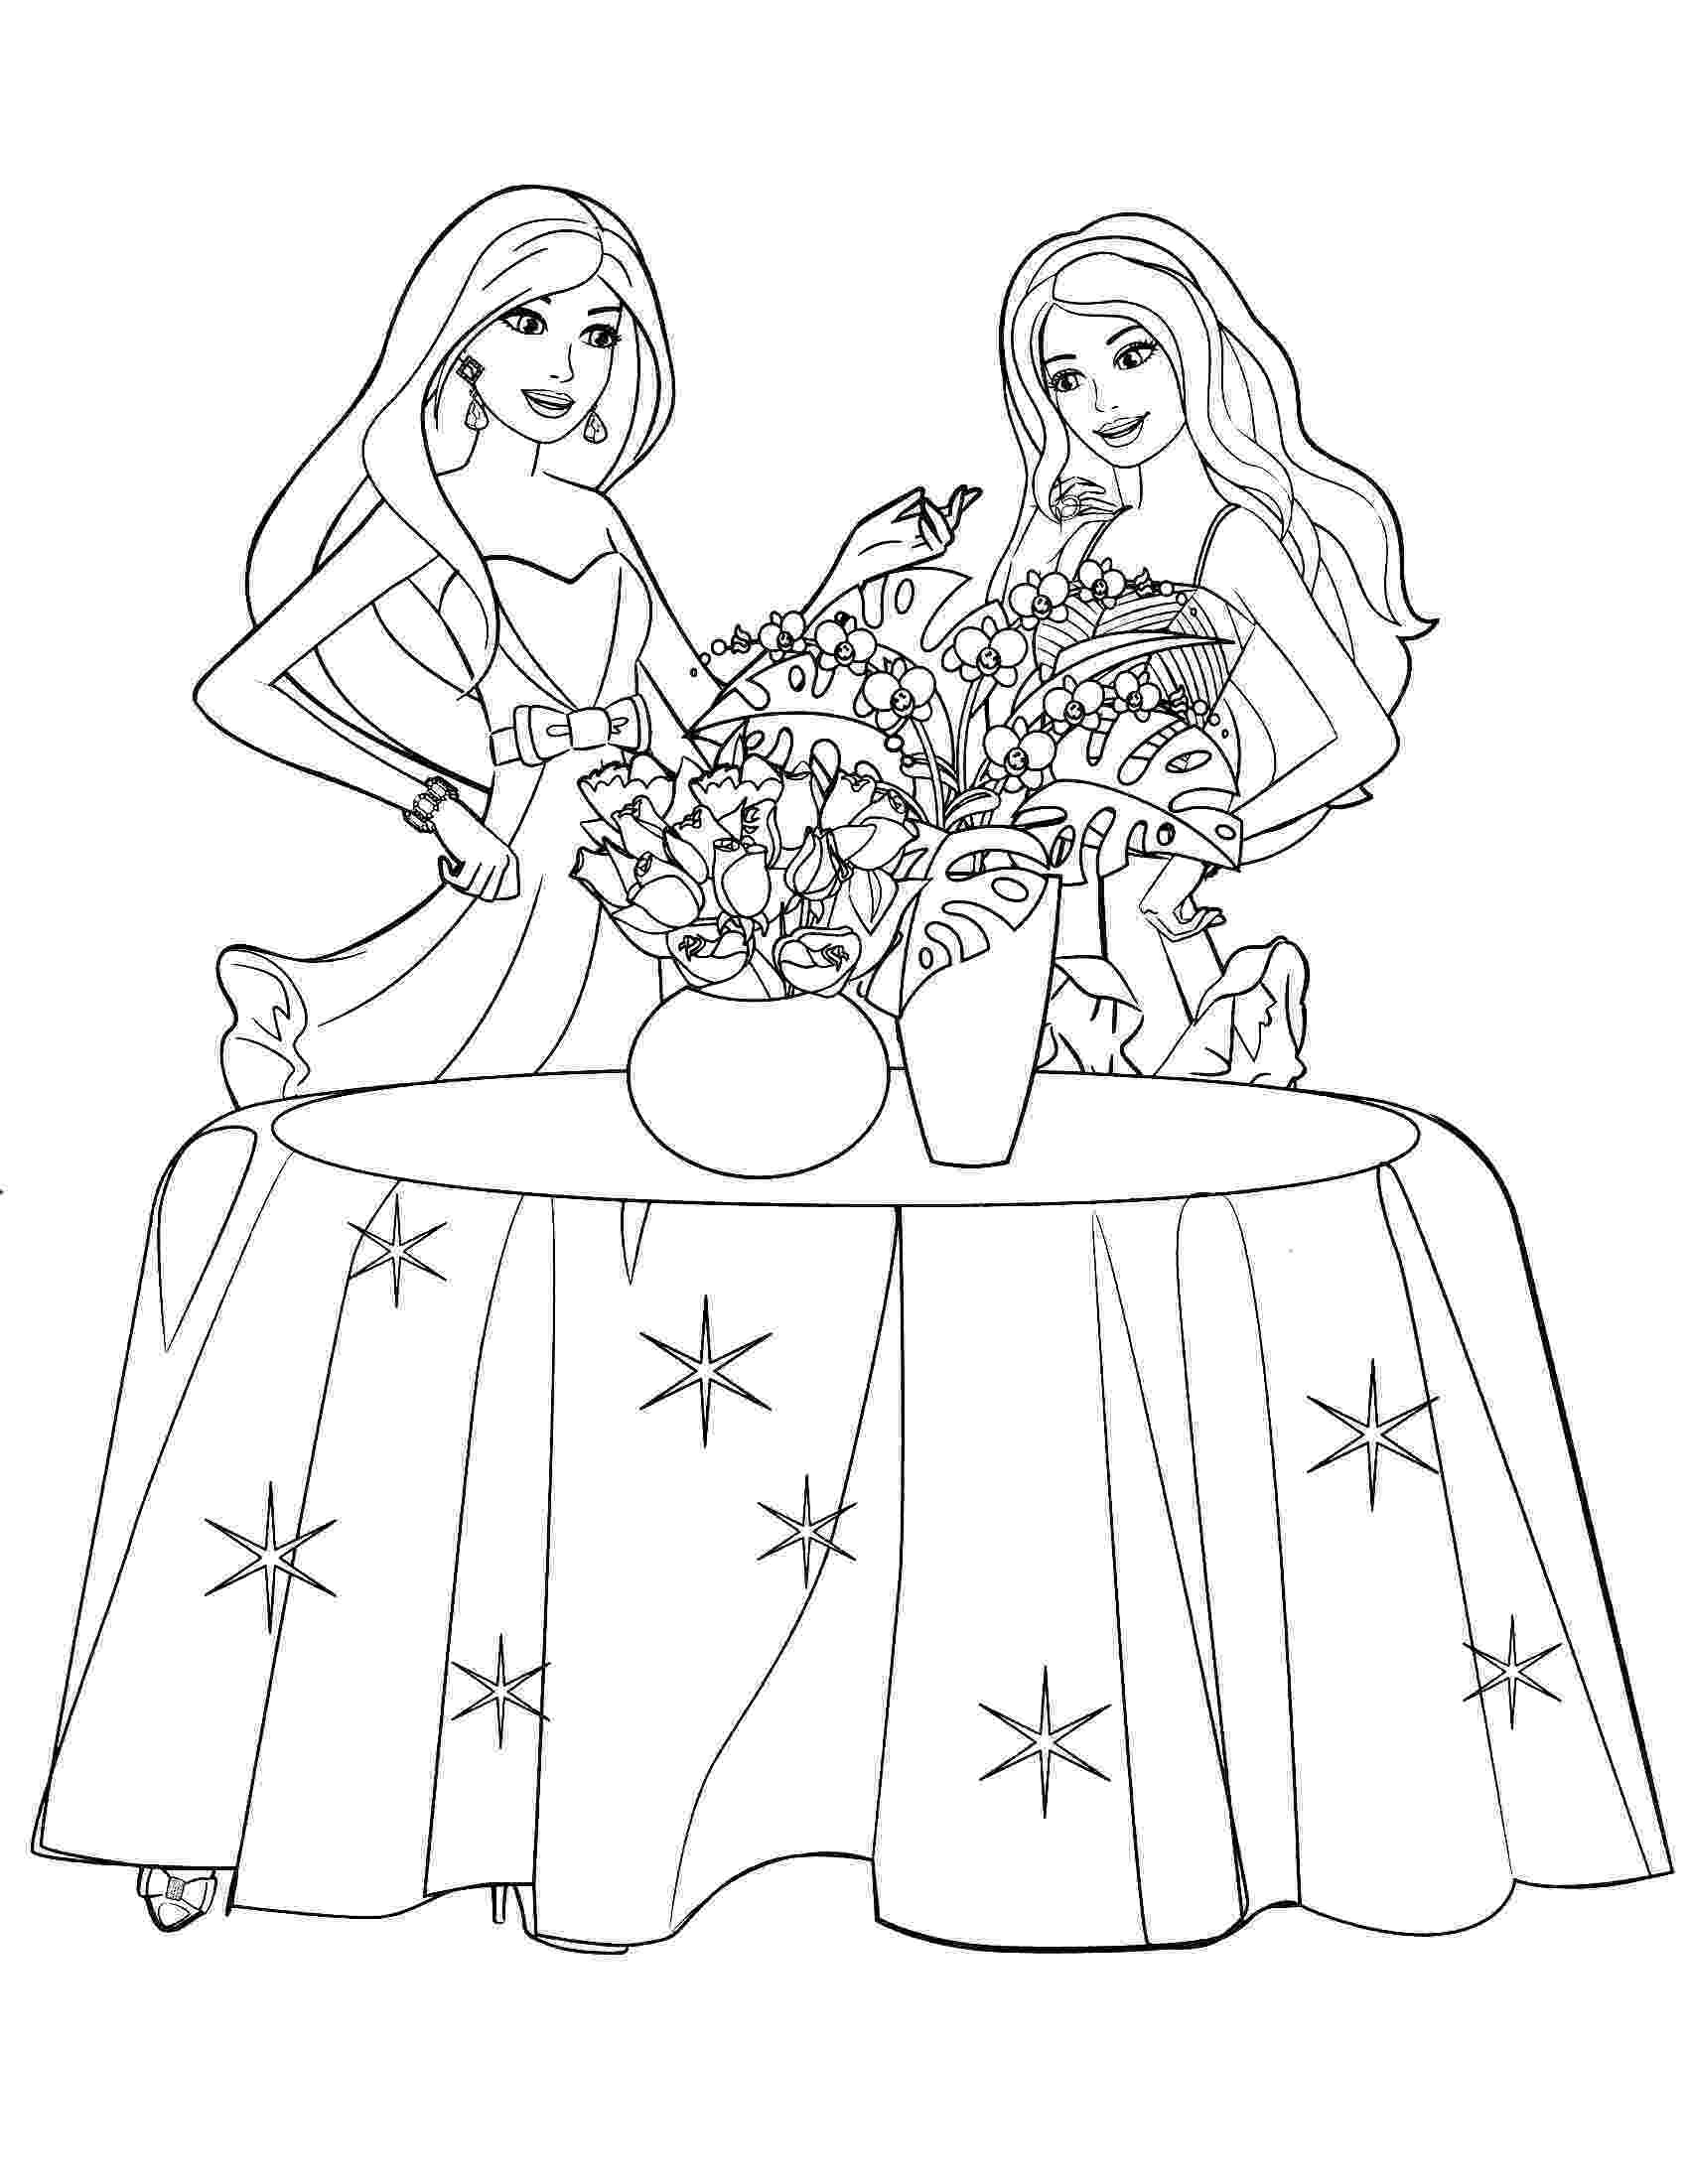 barbie print out coloring pages barbie princess coloring pages fantasy coloring pages pages coloring print out barbie